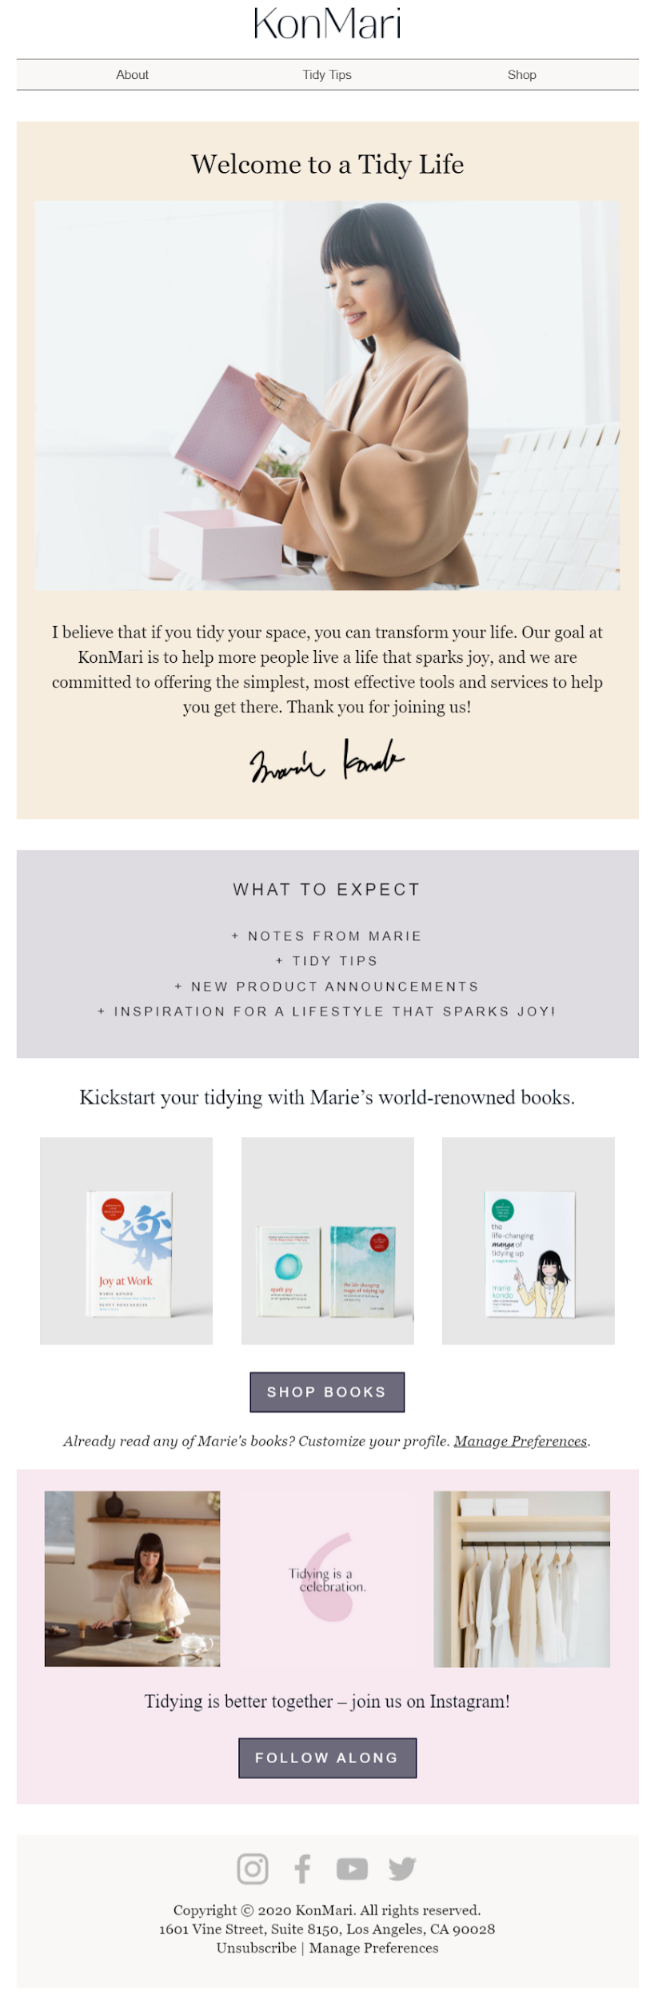 welcome email marketing example by KonMari